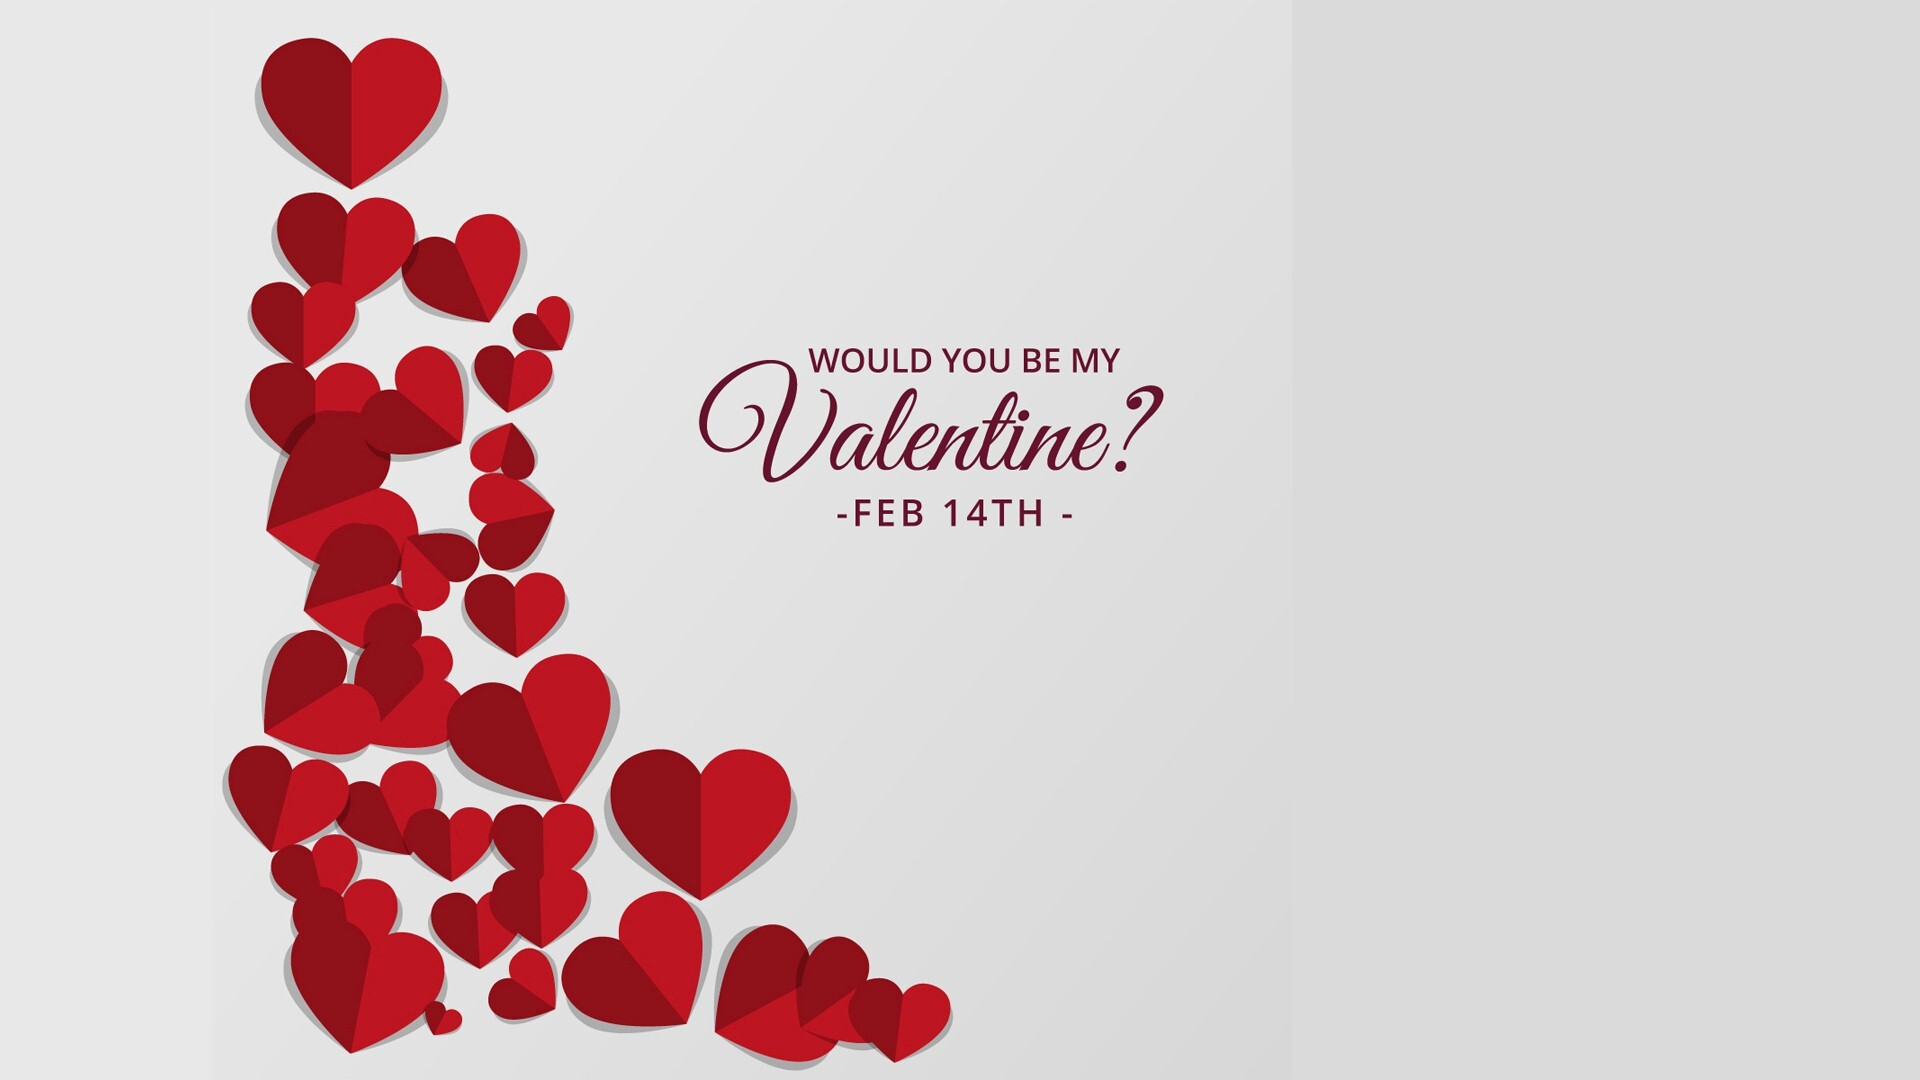 be my valentine hd wallpaper | hd wallpapers